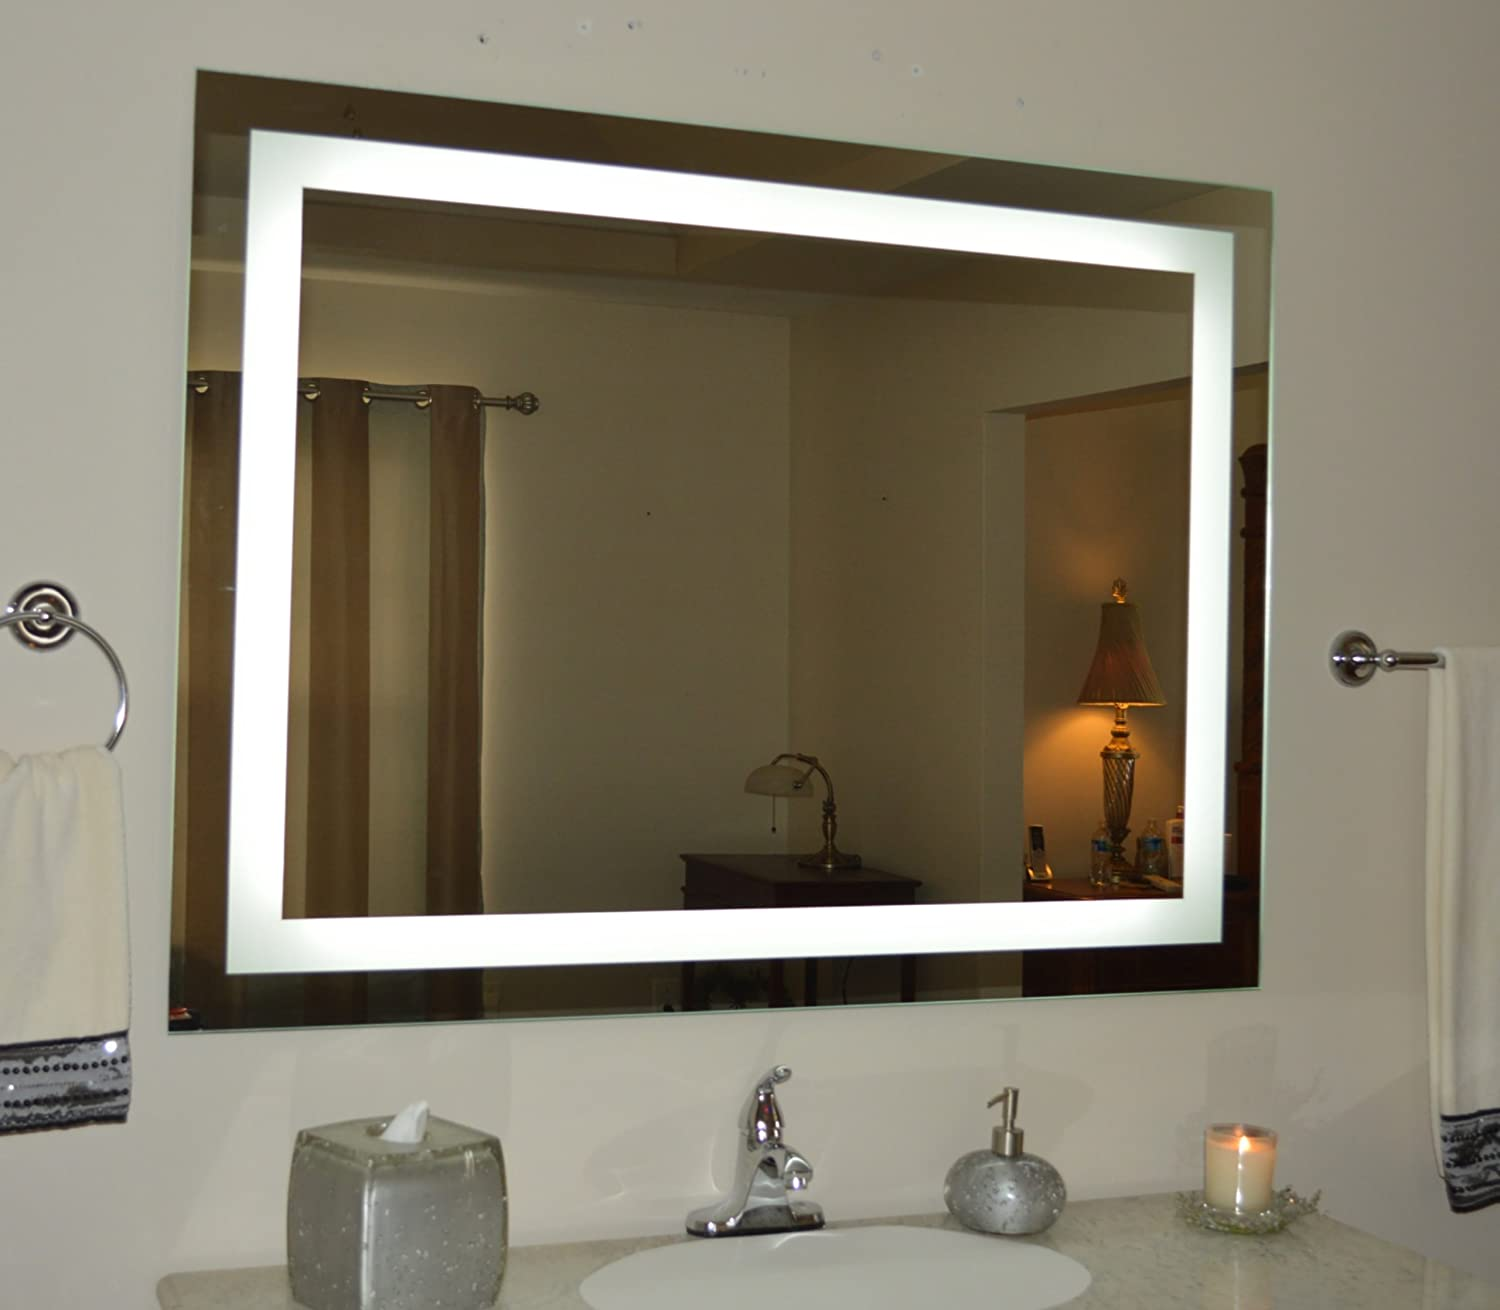 amazoncom wall mounted lighted vanity mirror led mam commercialgrade  home  kitchen. amazoncom wall mounted lighted vanity mirror led mam